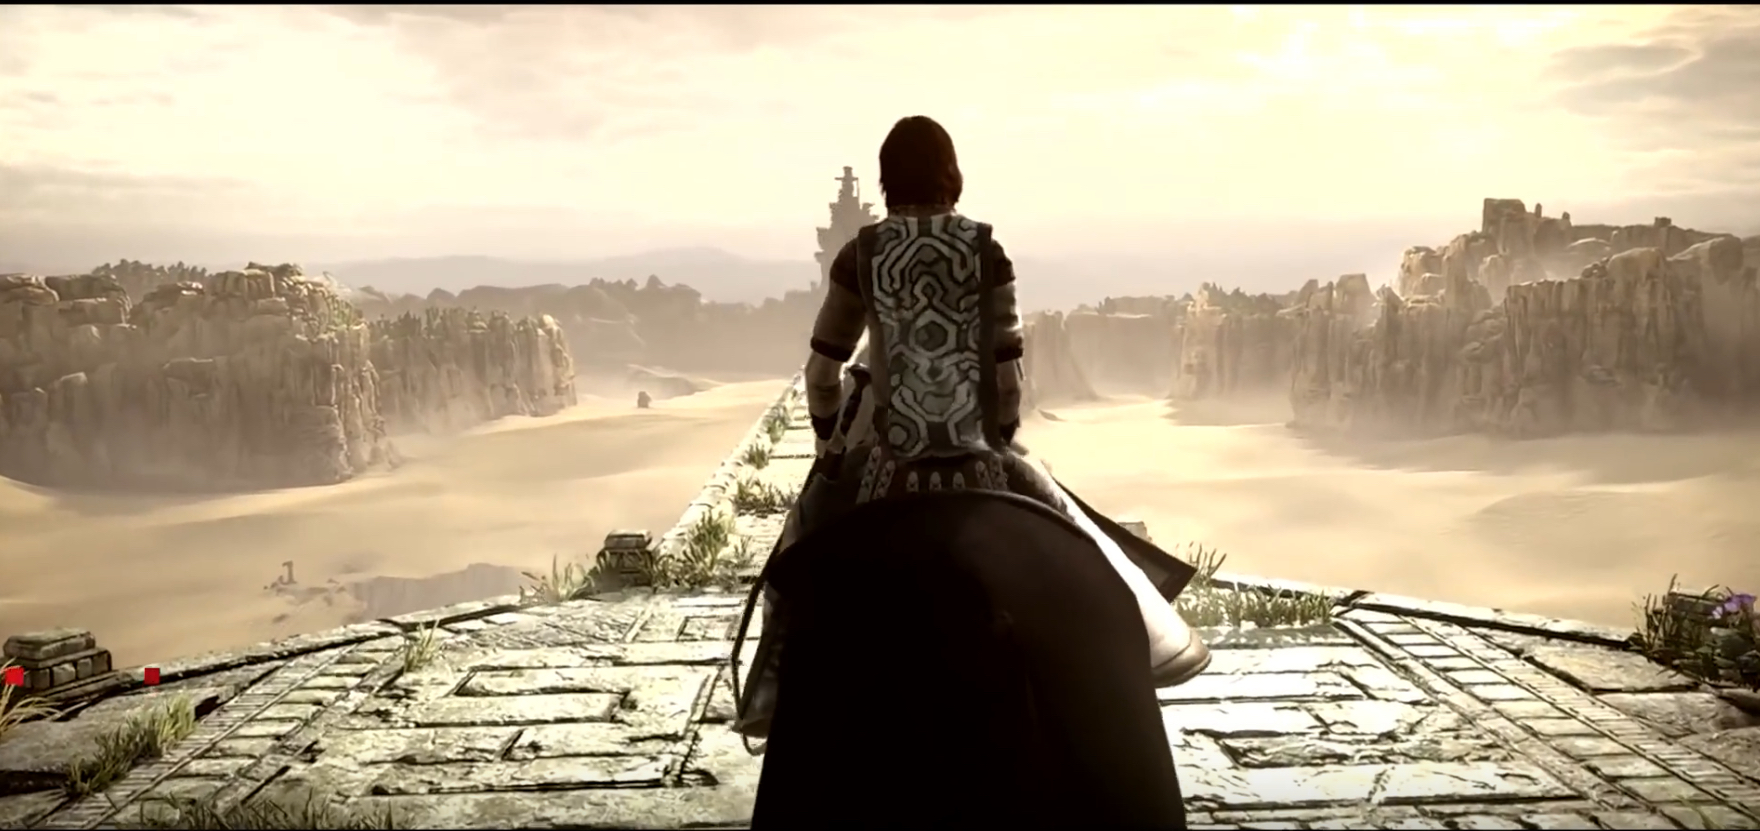 Shadow Of The Colossus Remake Is One Of The Free Games For PS Plus Members In March